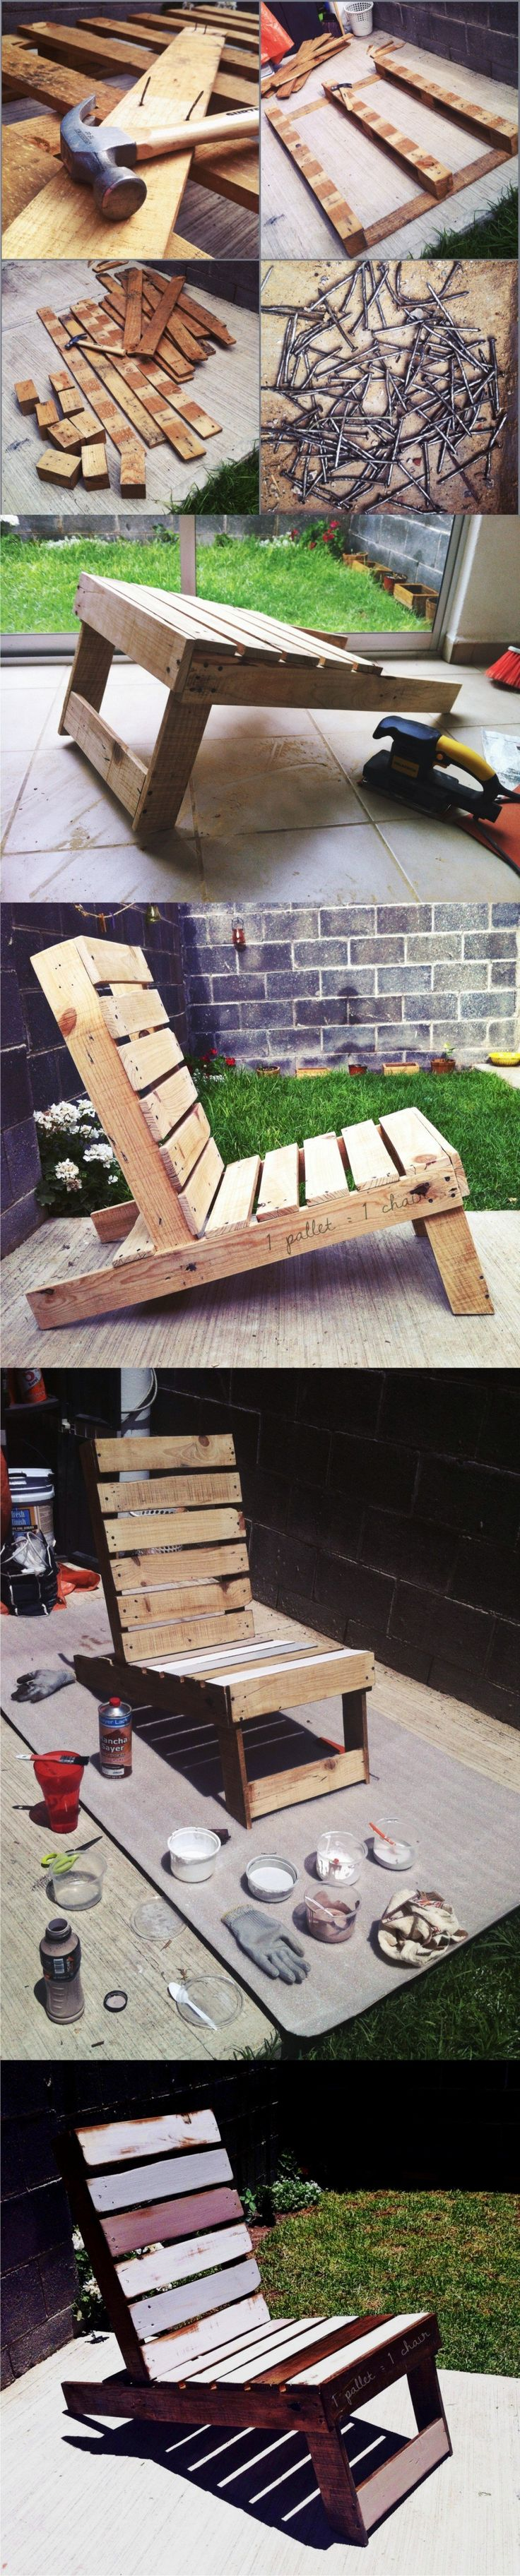 The 25 best pallet chairs ideas on pinterest pallet - Ideas con pallets ...